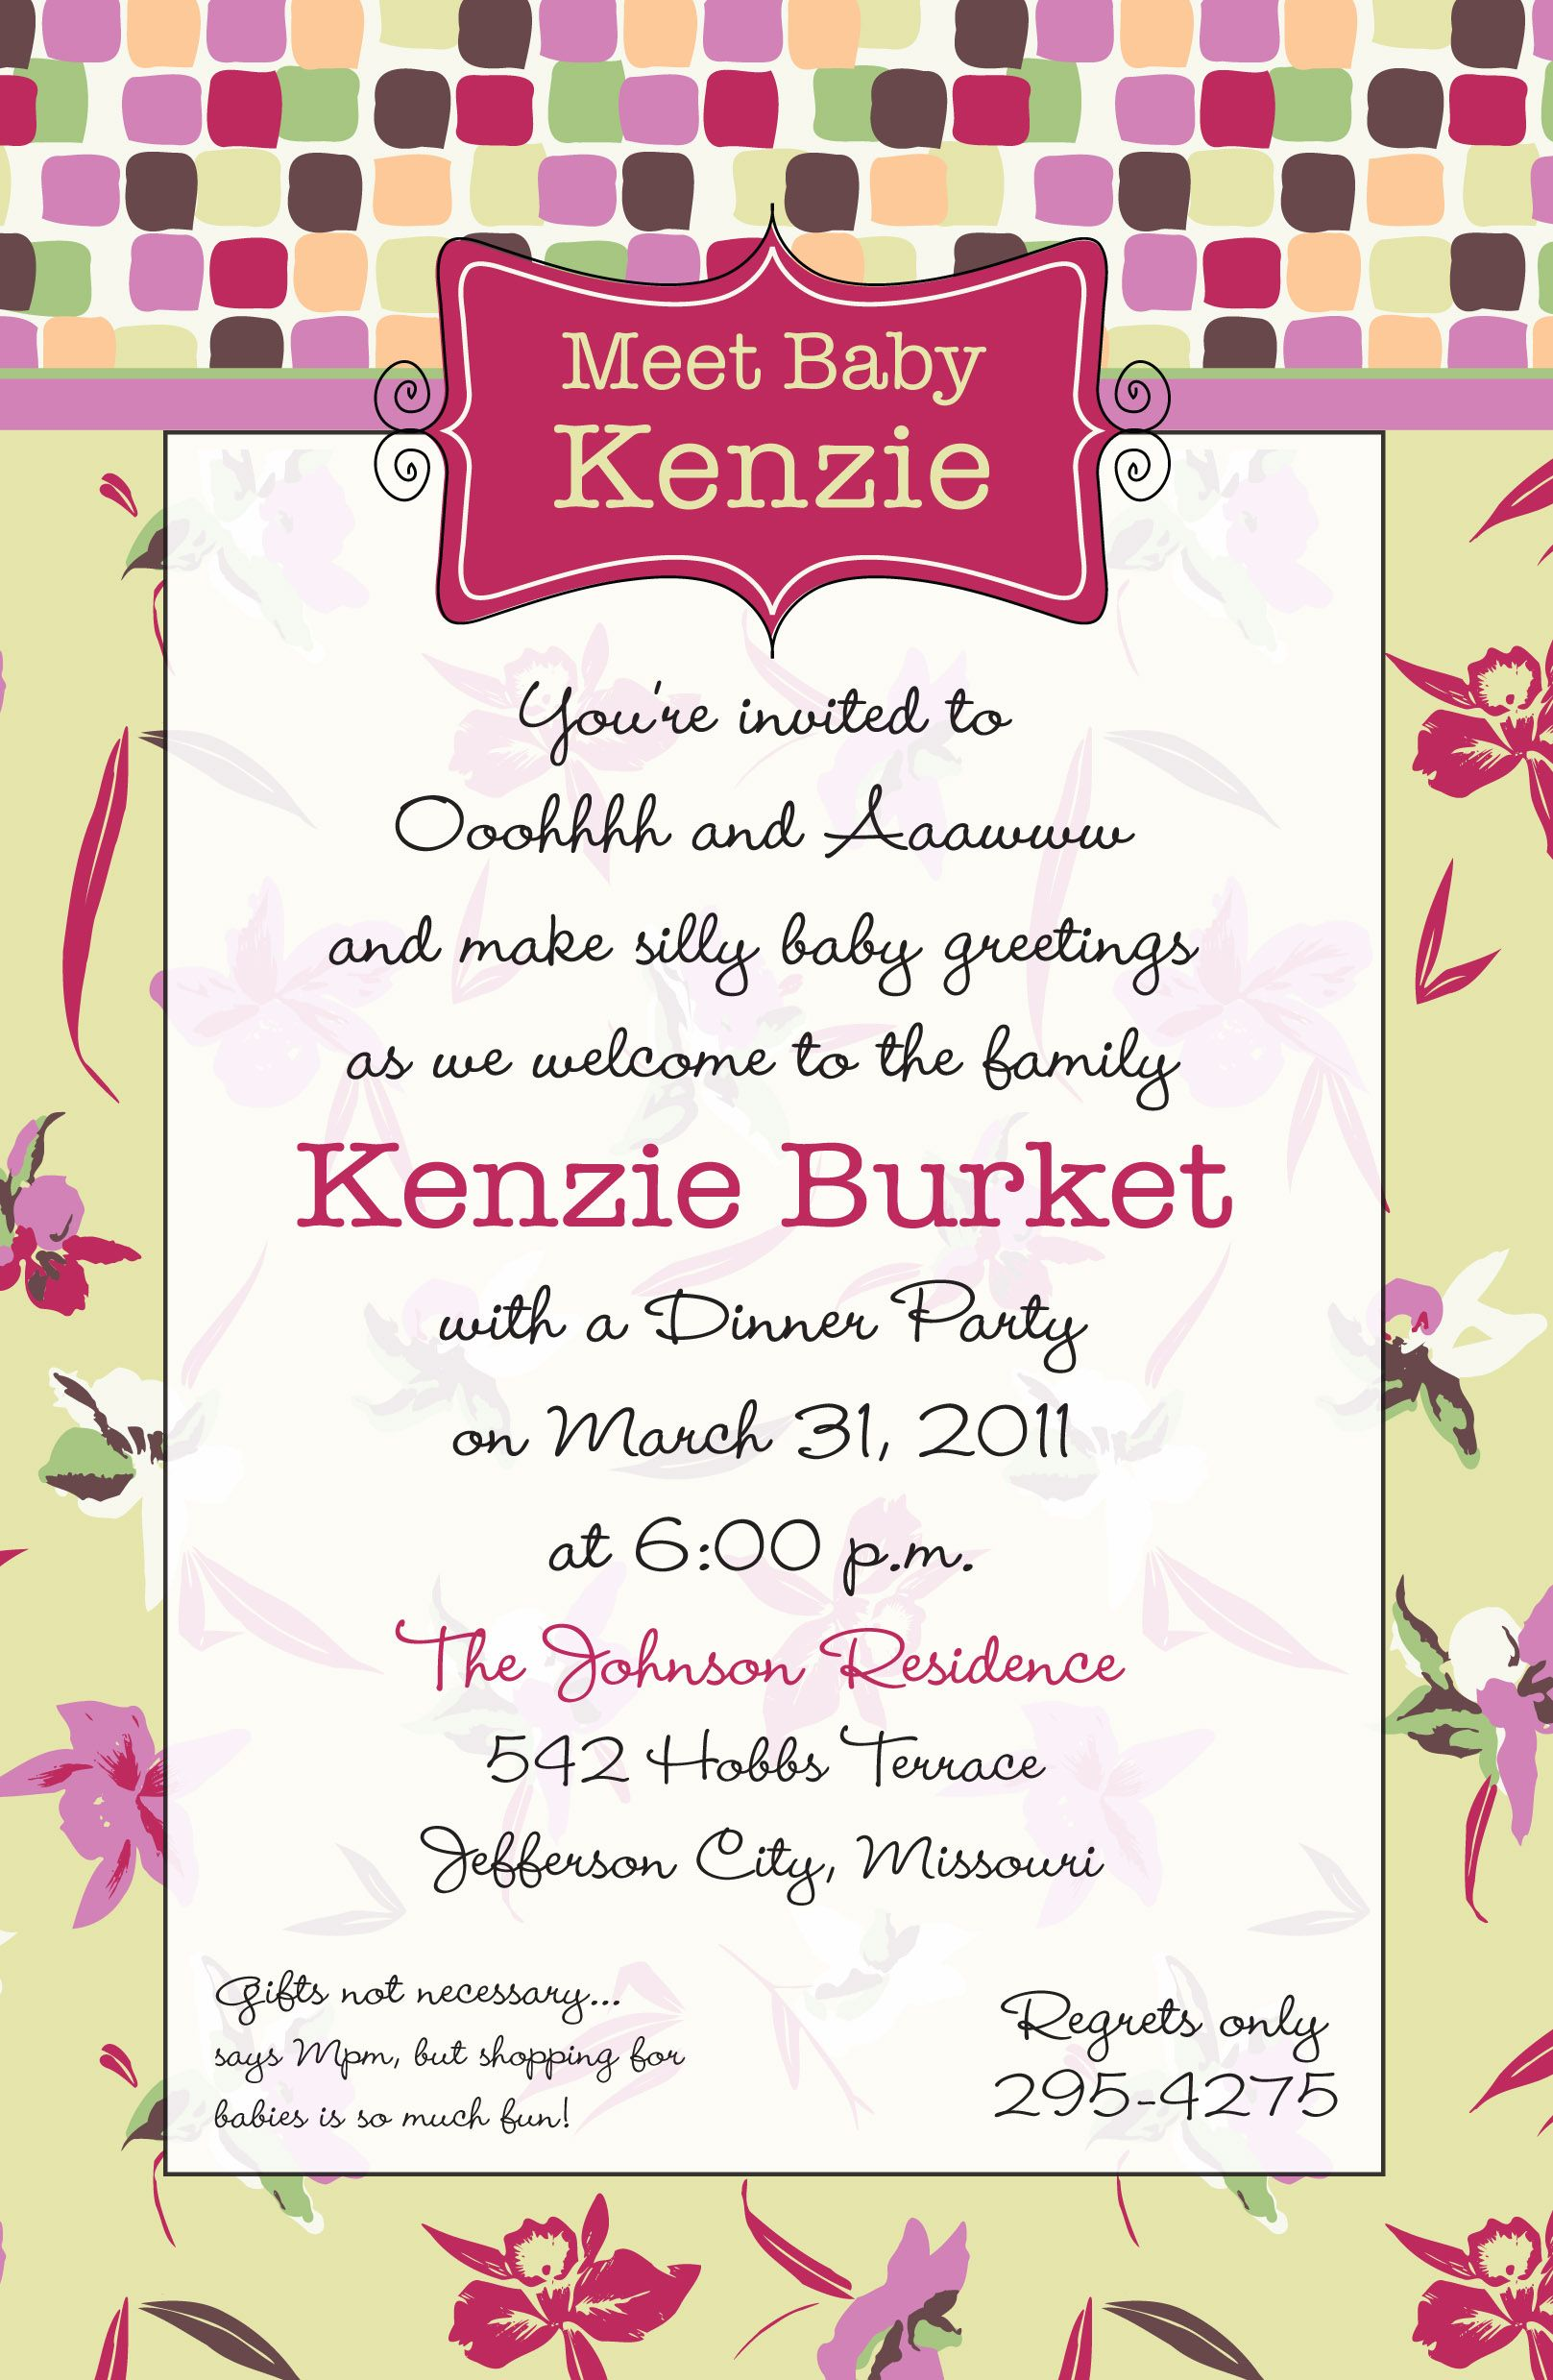 Welcome Baby Invitation | Invitations | Pinterest | Baby invitations ...